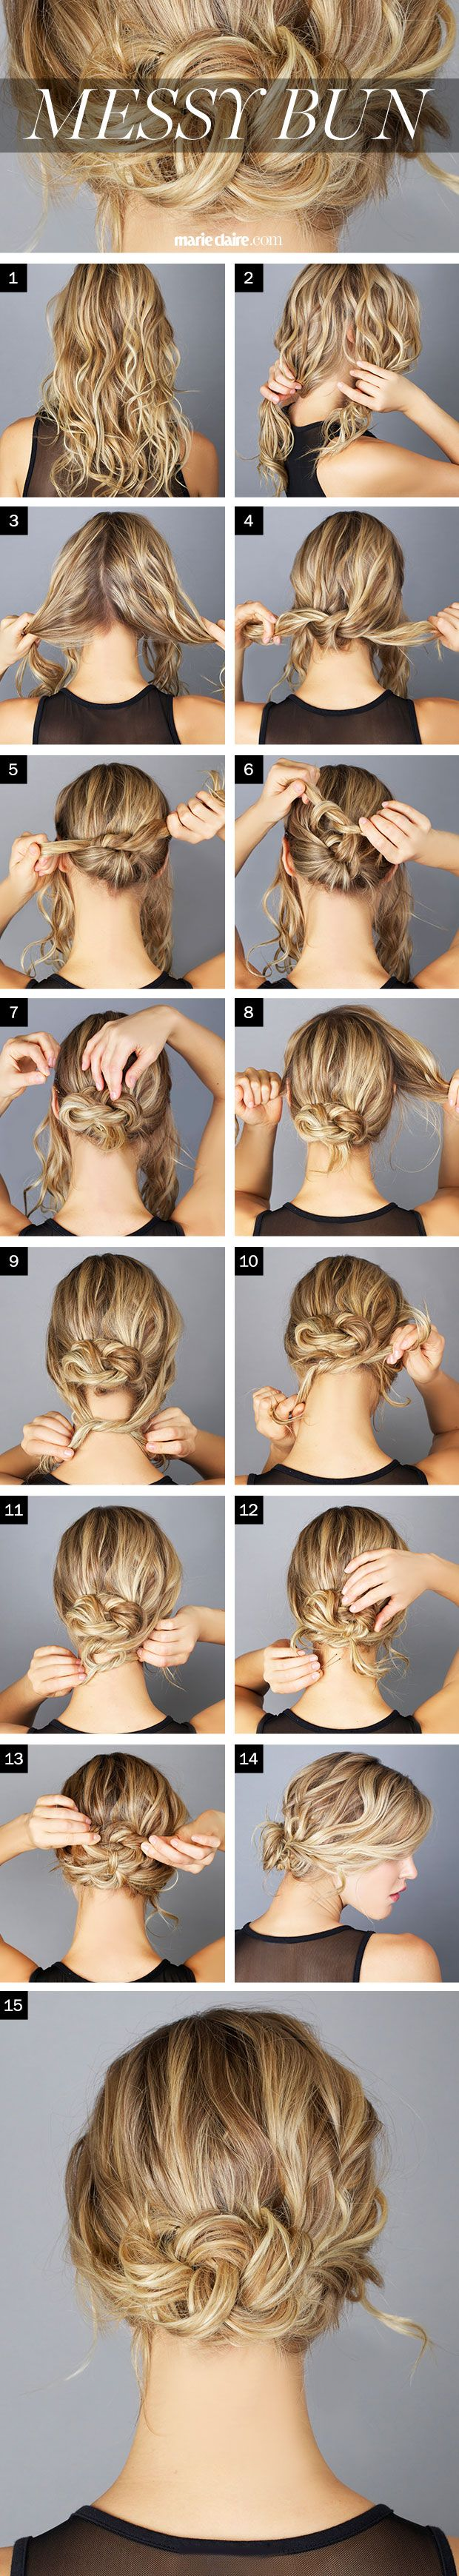 messy buns for long hair buns12